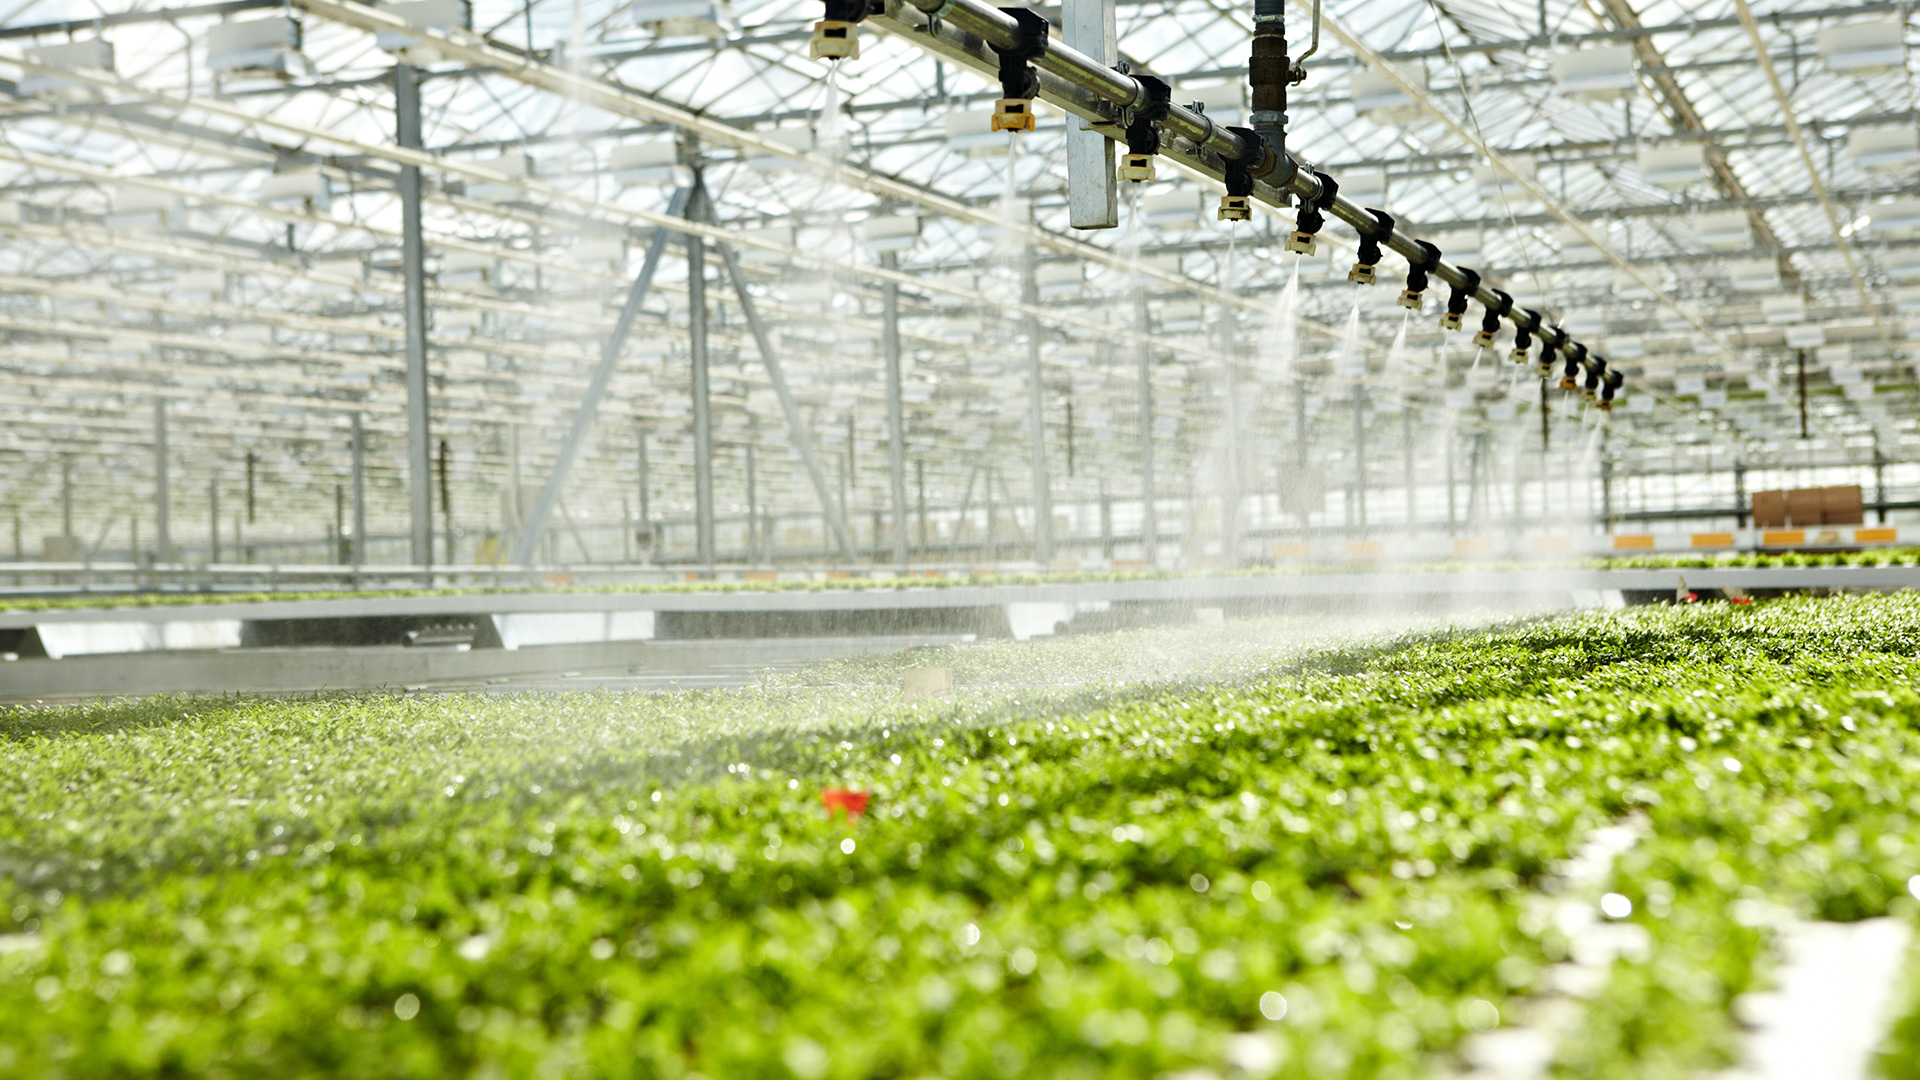 plants in a greenhouse being sprayed with water